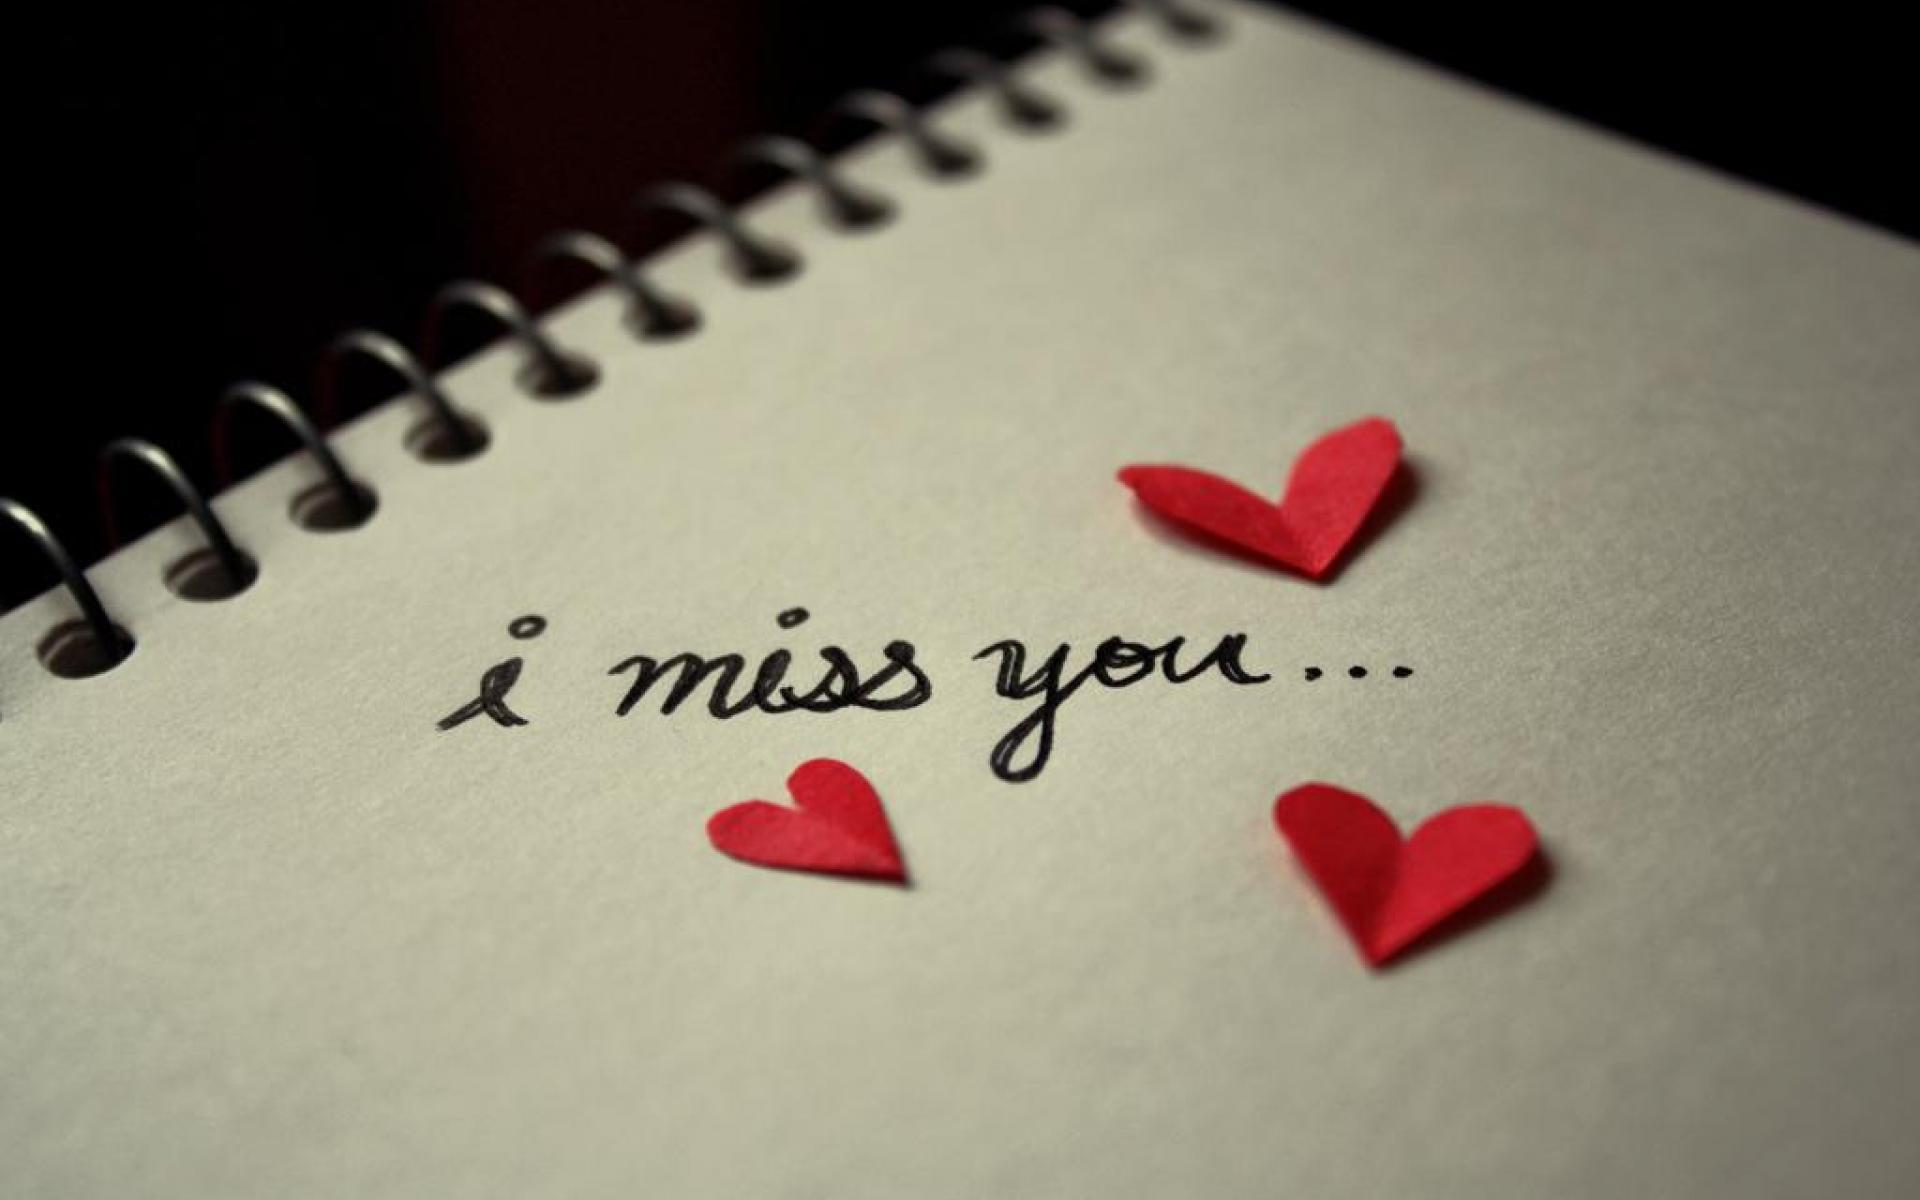 Wallpaper download i miss you - Wallpaper Download I Miss You 24